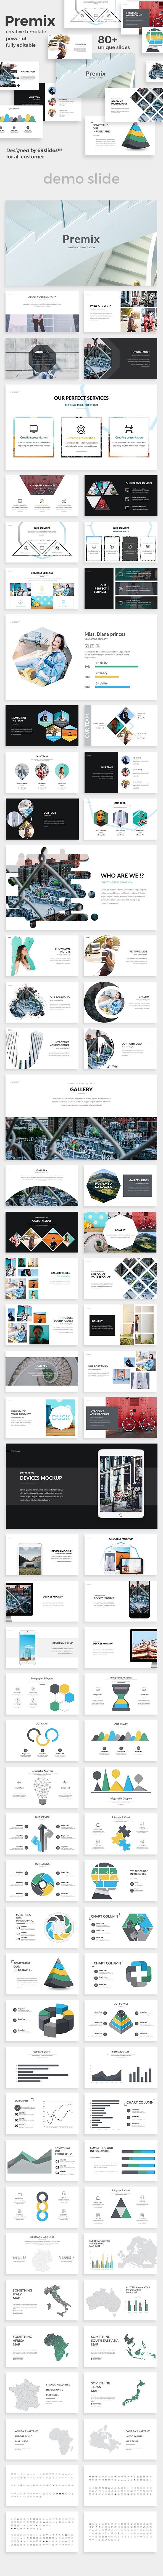 GraphicRiver Premix Creative Keynote Template 20819572